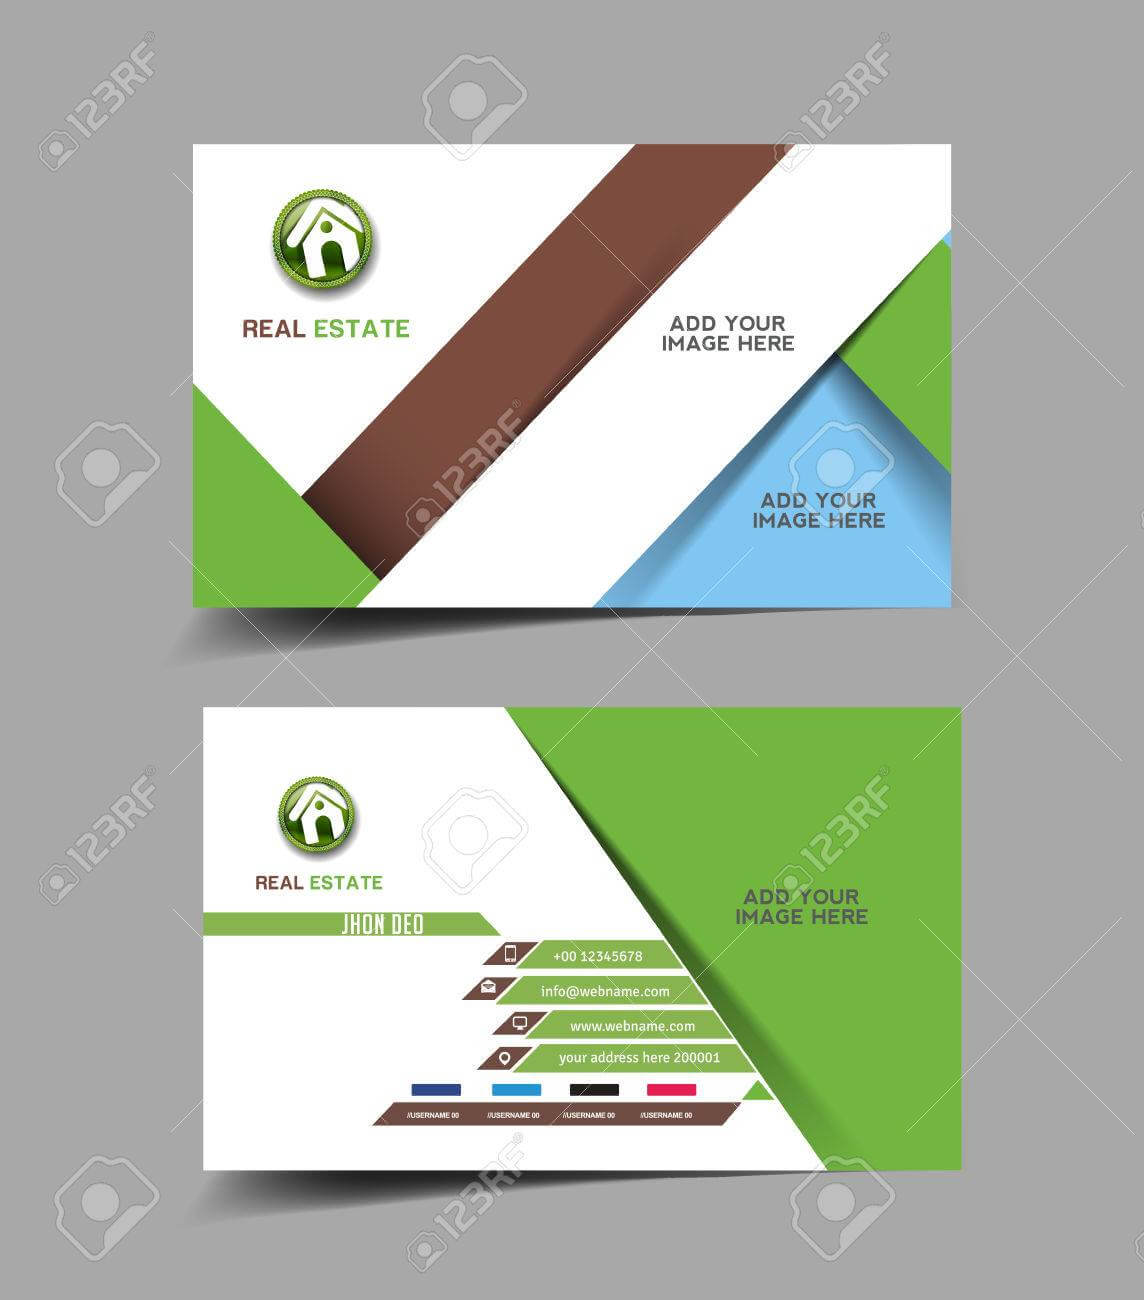 Real Estate Agent Business Card Set Template with regard to Real Estate Agent Business Card Template